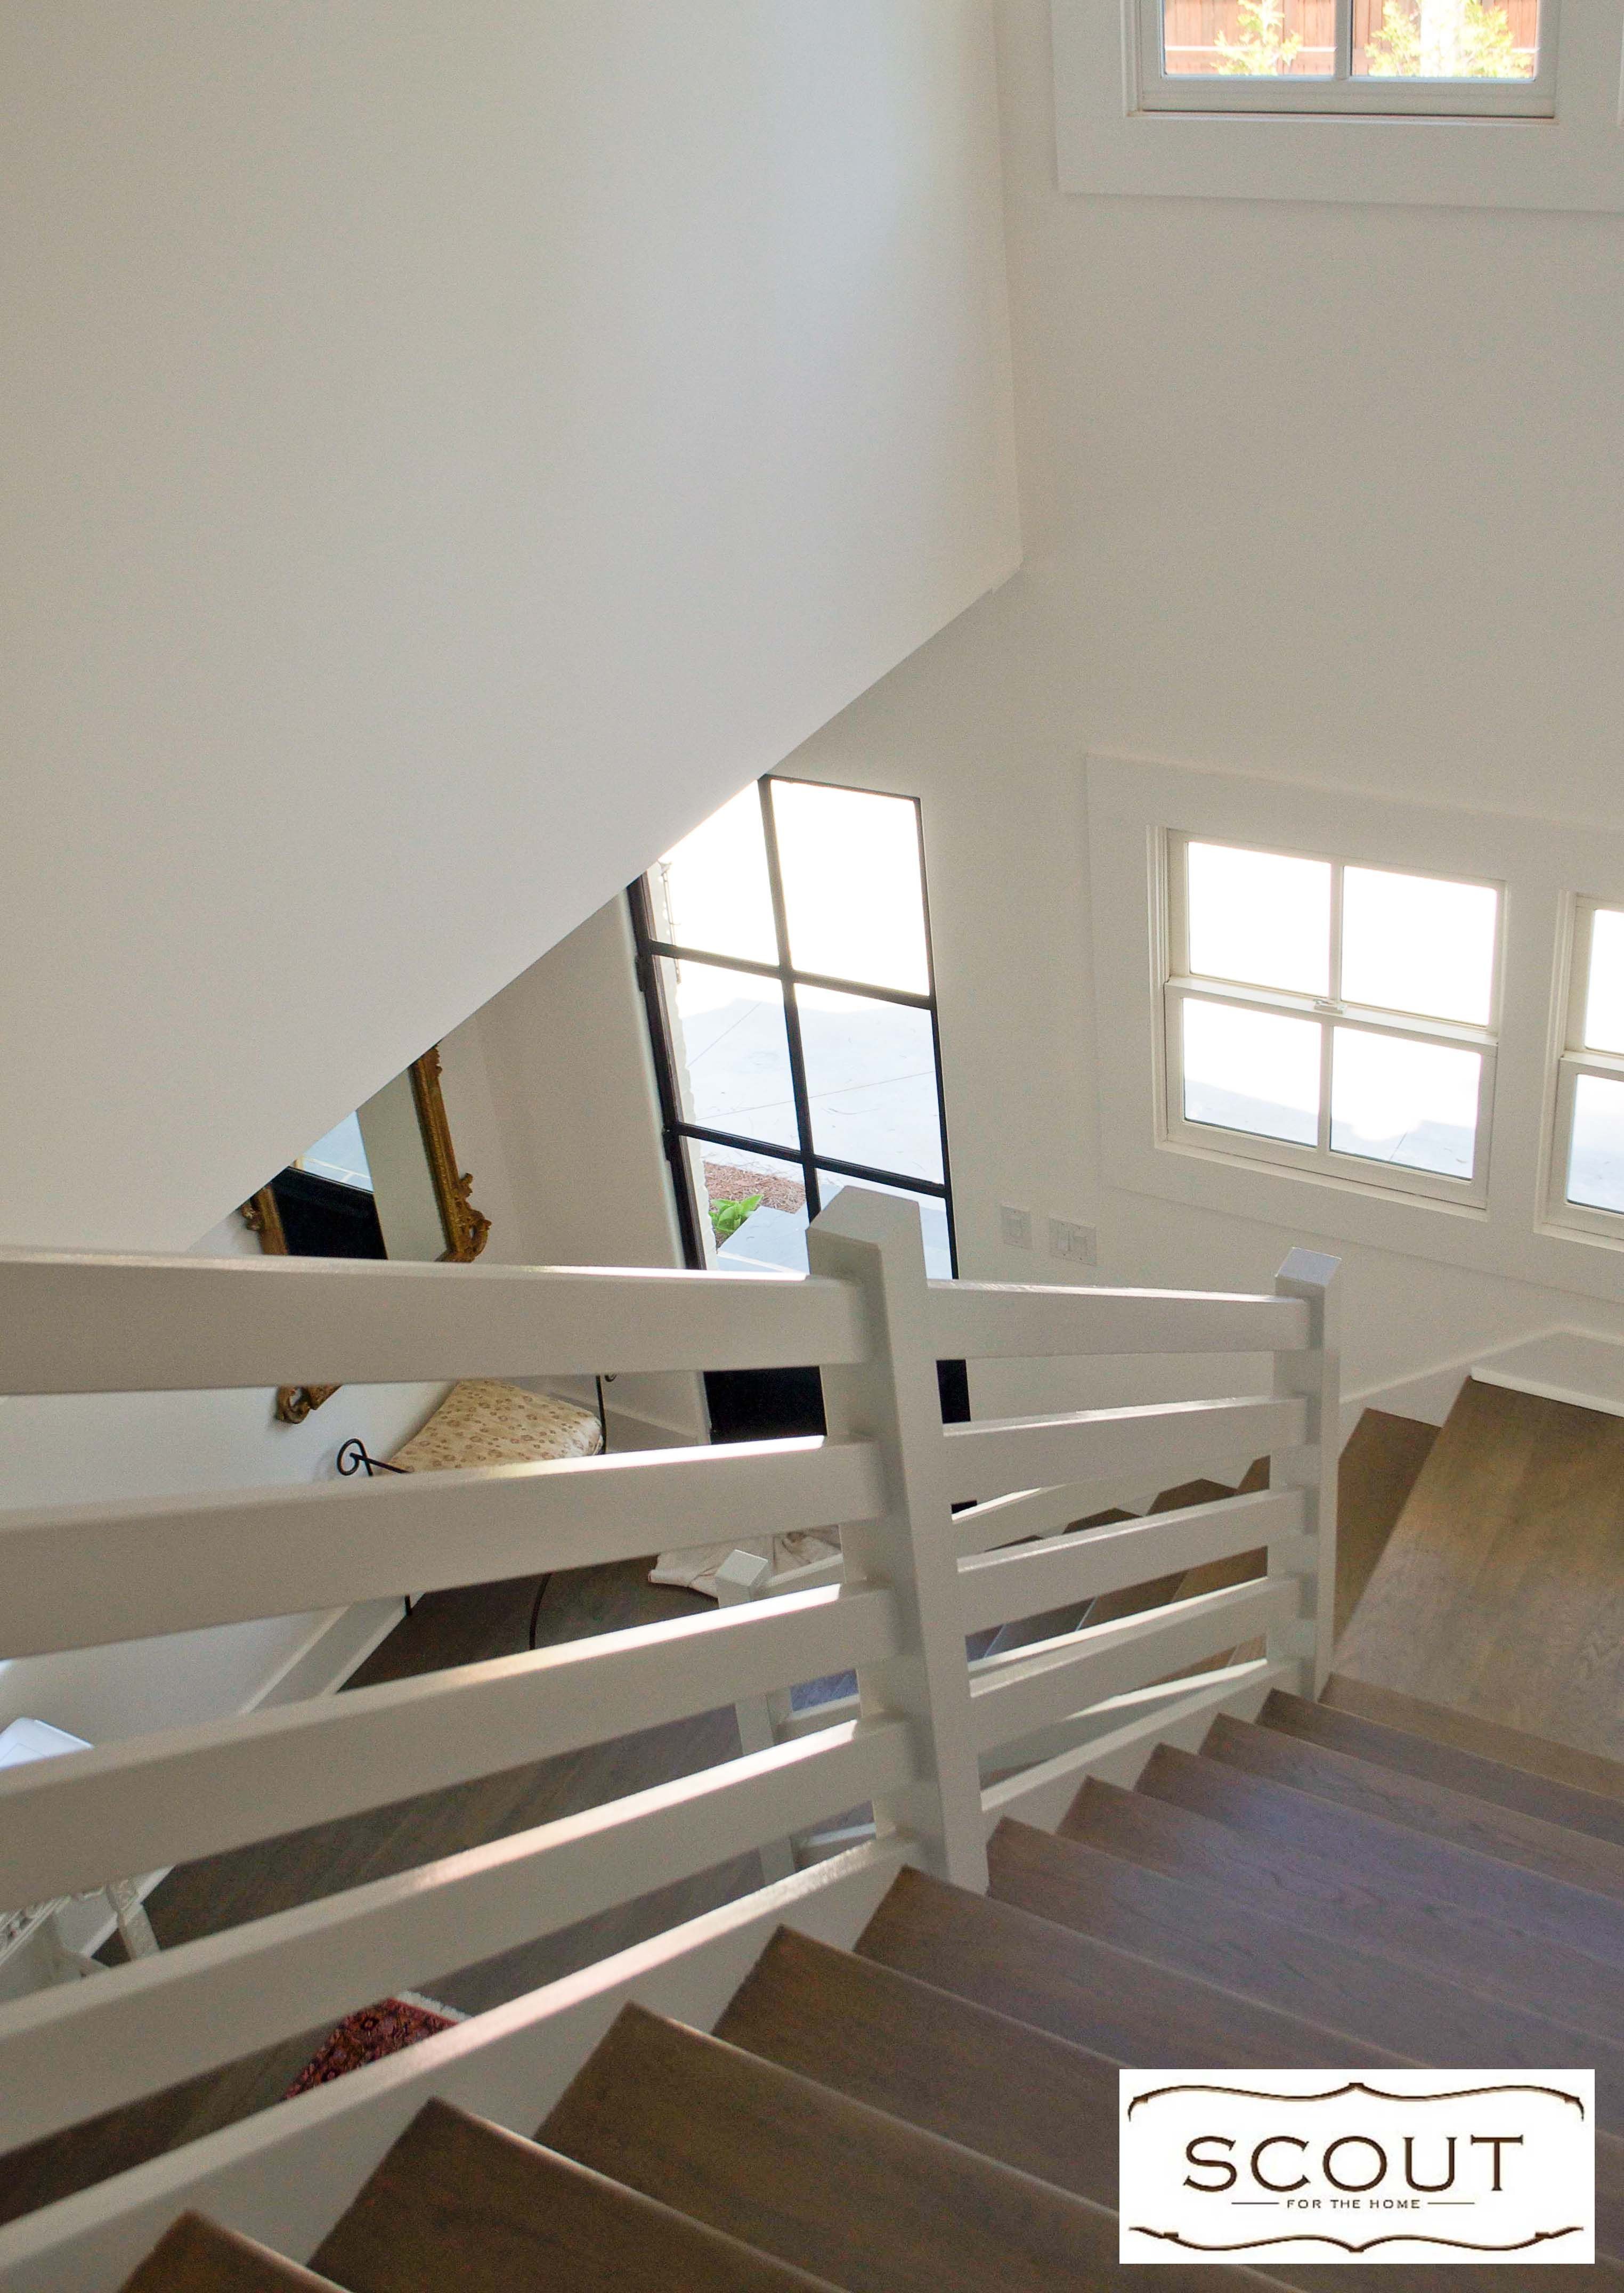 Stair Finishes Pictures Stair Hall And Stairs Were Designed By Duffey Romas Finishes Are